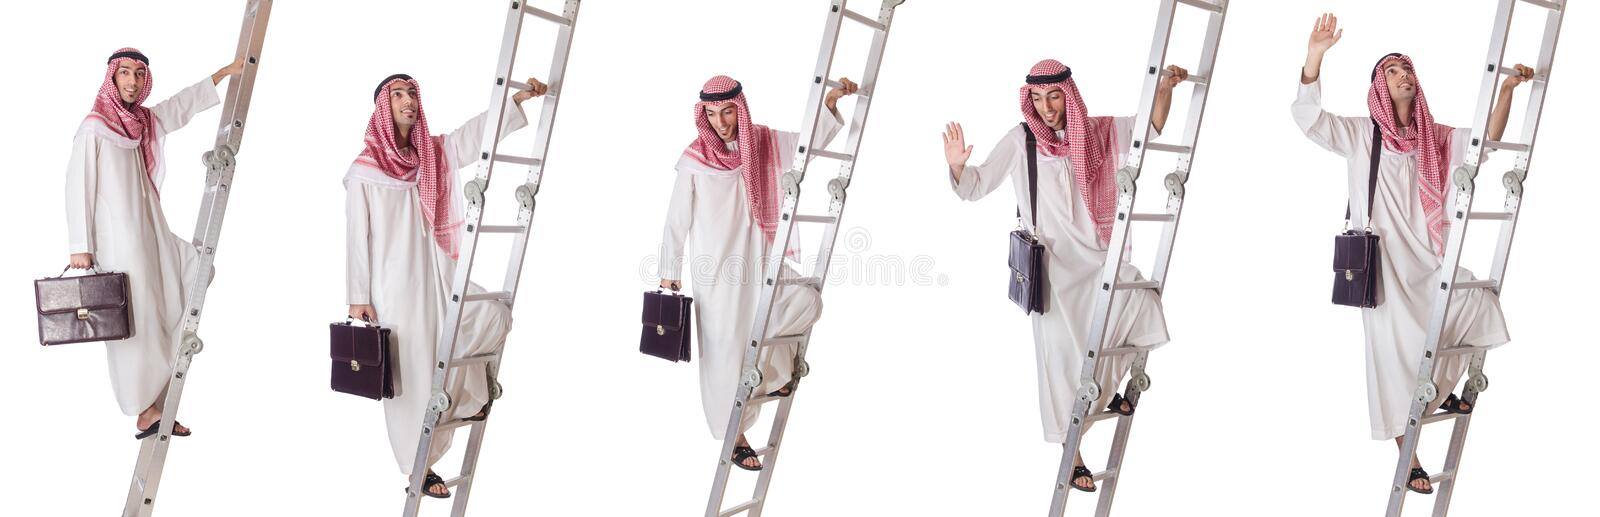 The arab businessman climbing the stairs on white. Arab businessman climbing the stairs on white stock images